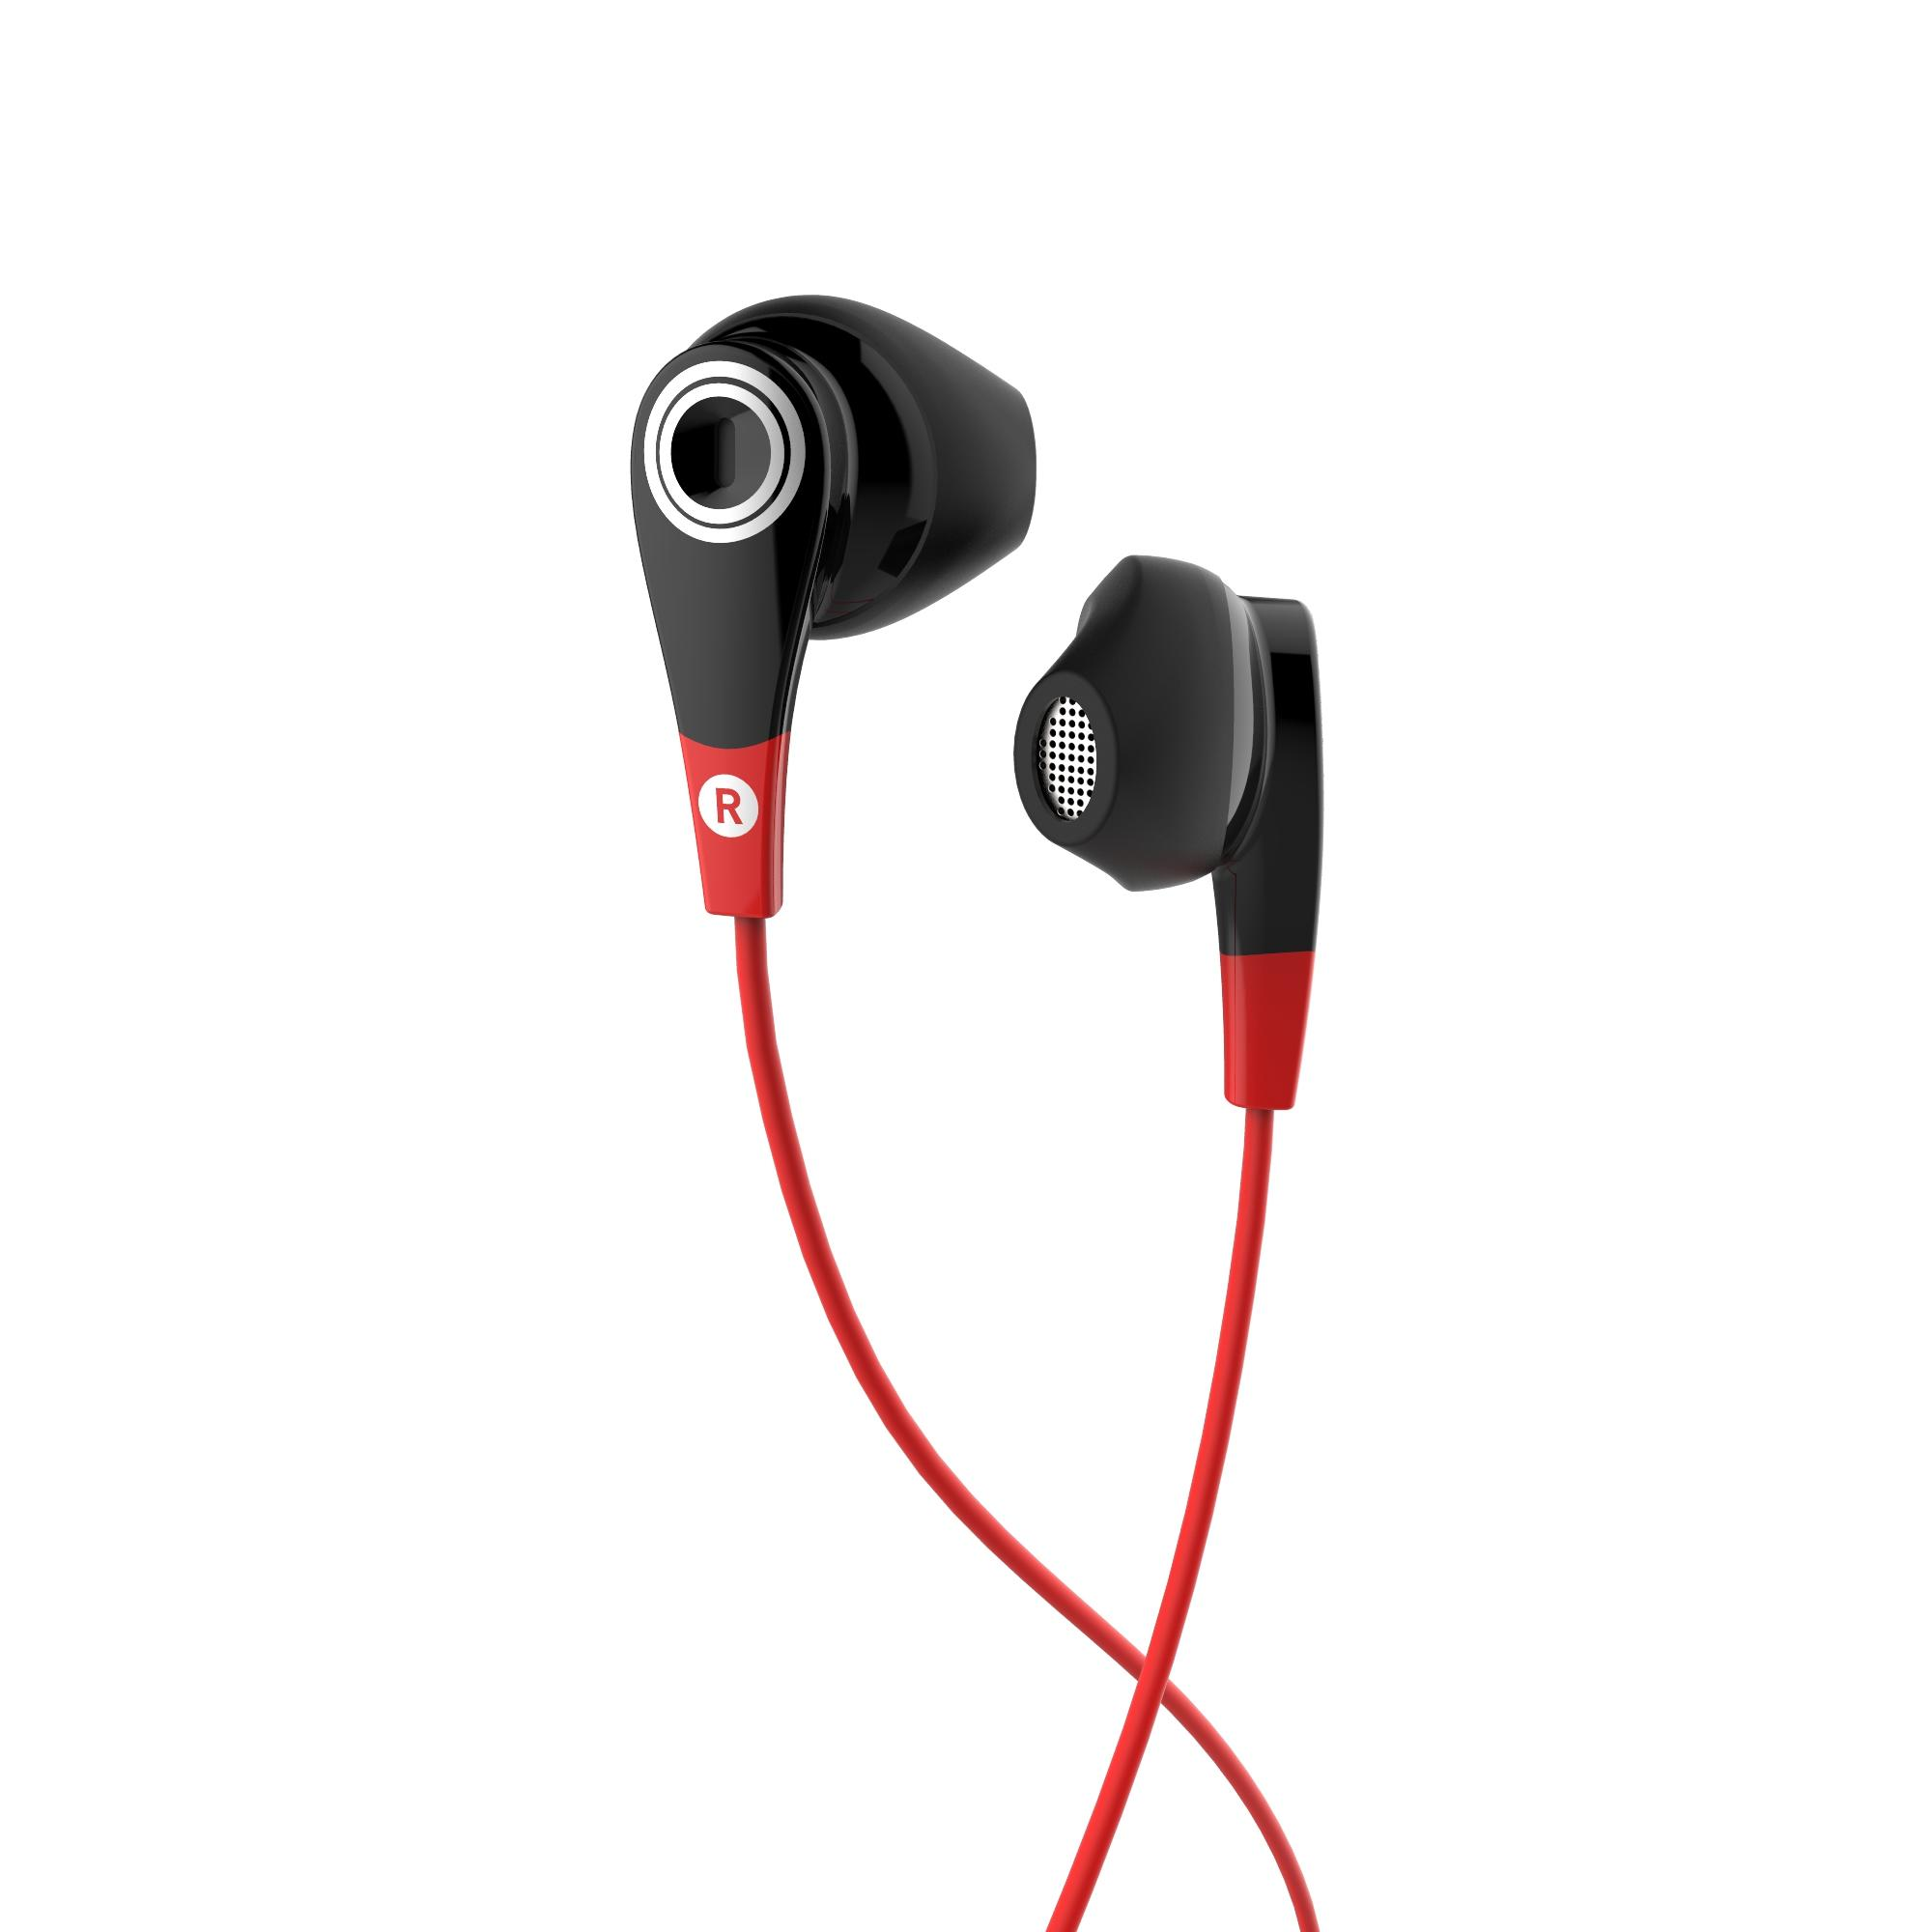 ONear 300 Sports Earphones with Mico - Black/Red